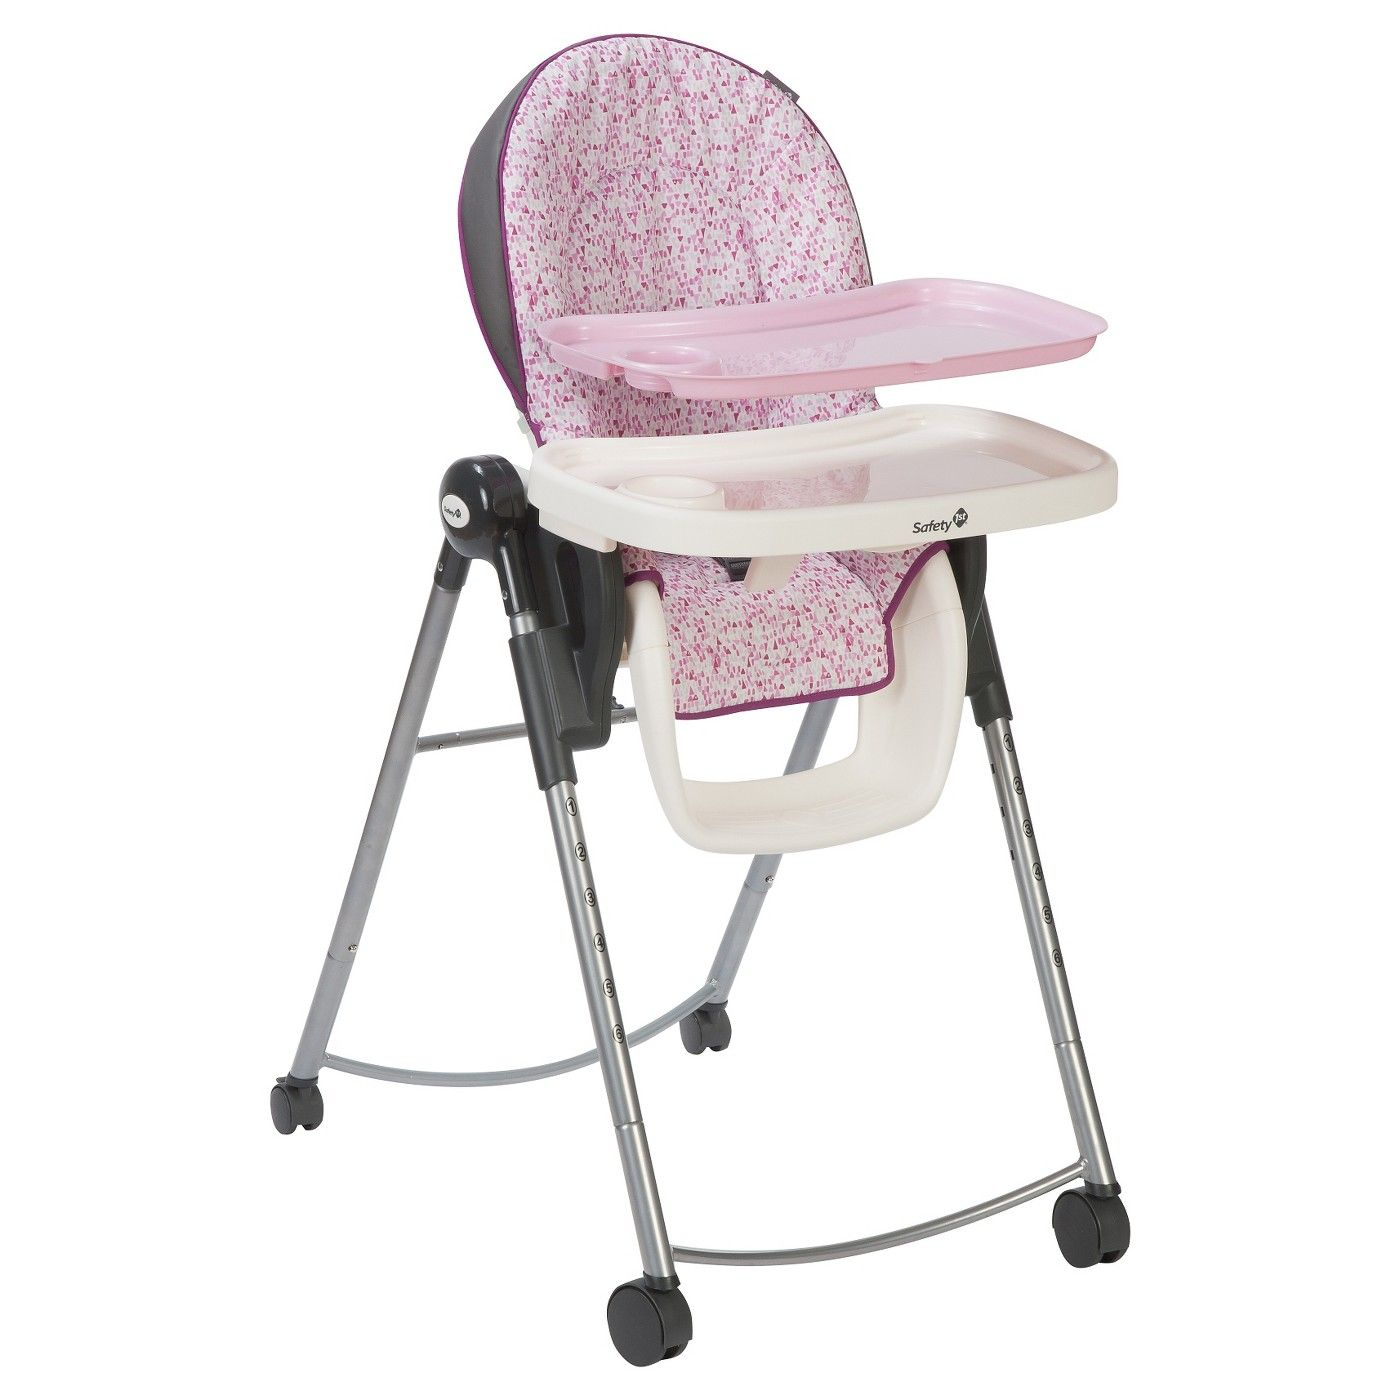 Safety 1st Adaptable High Chair Sorbet Affiliate Adaptable